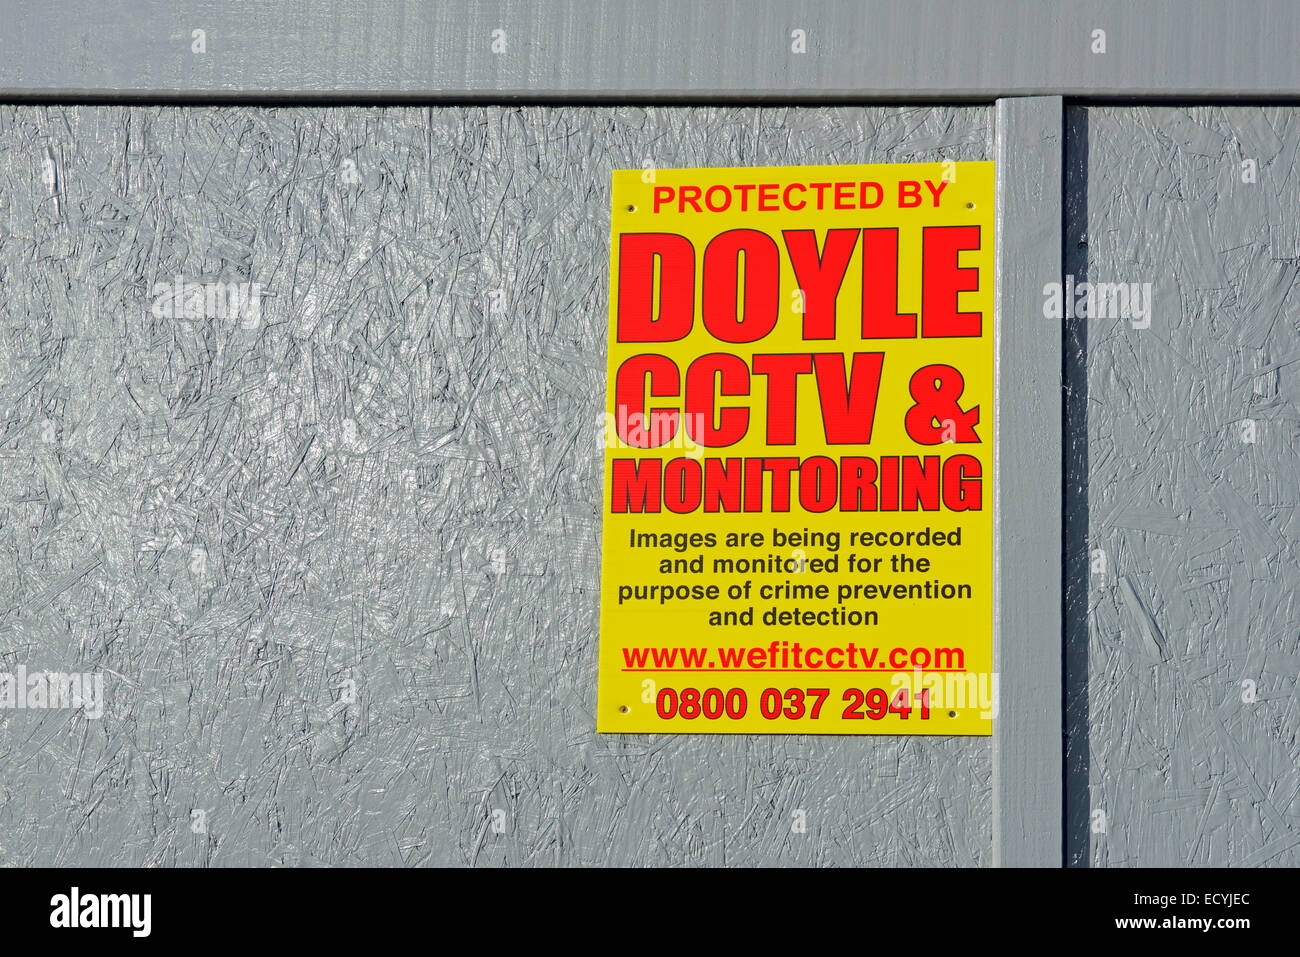 Sign on building site for CCTV monitoring - Stock Image